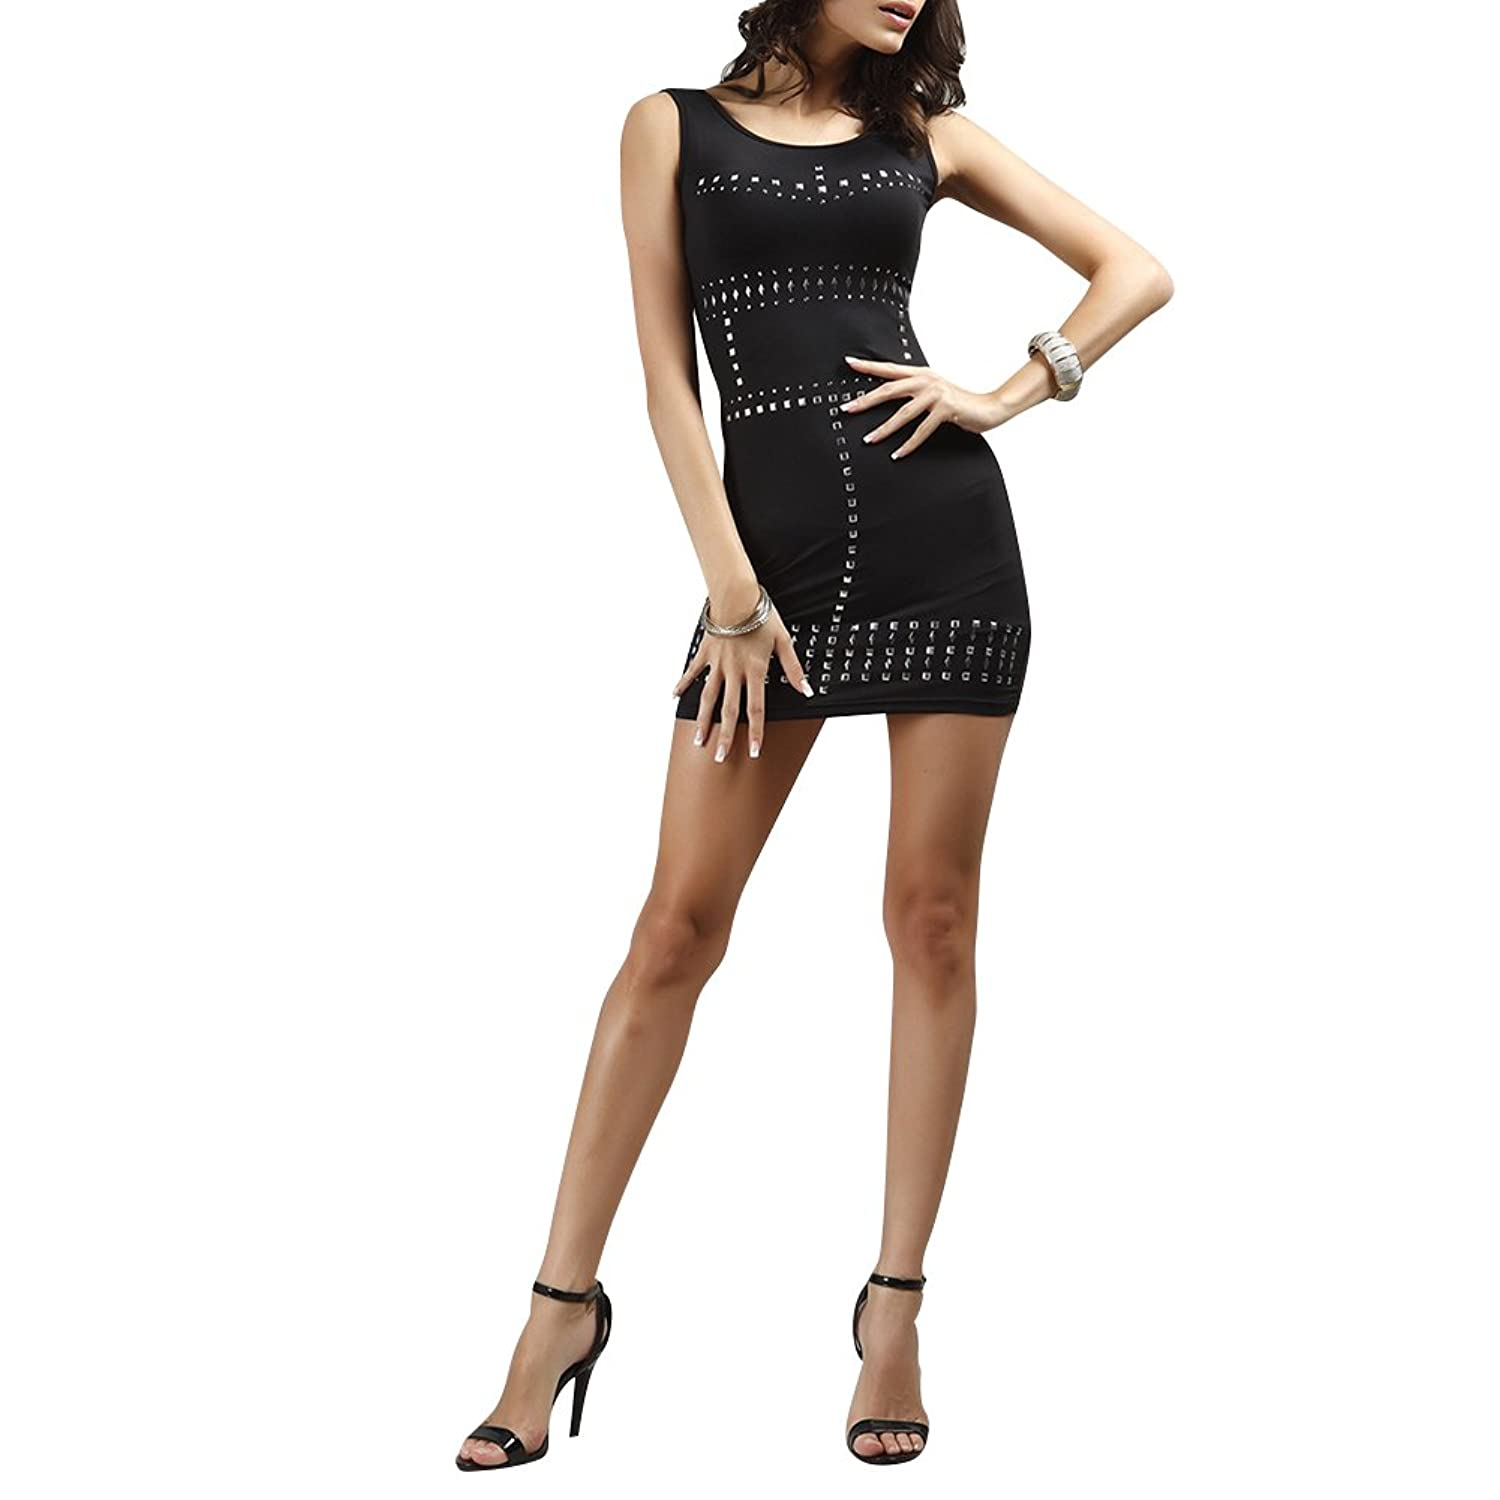 CoolBiz Women's Studded Sleeveless Dress